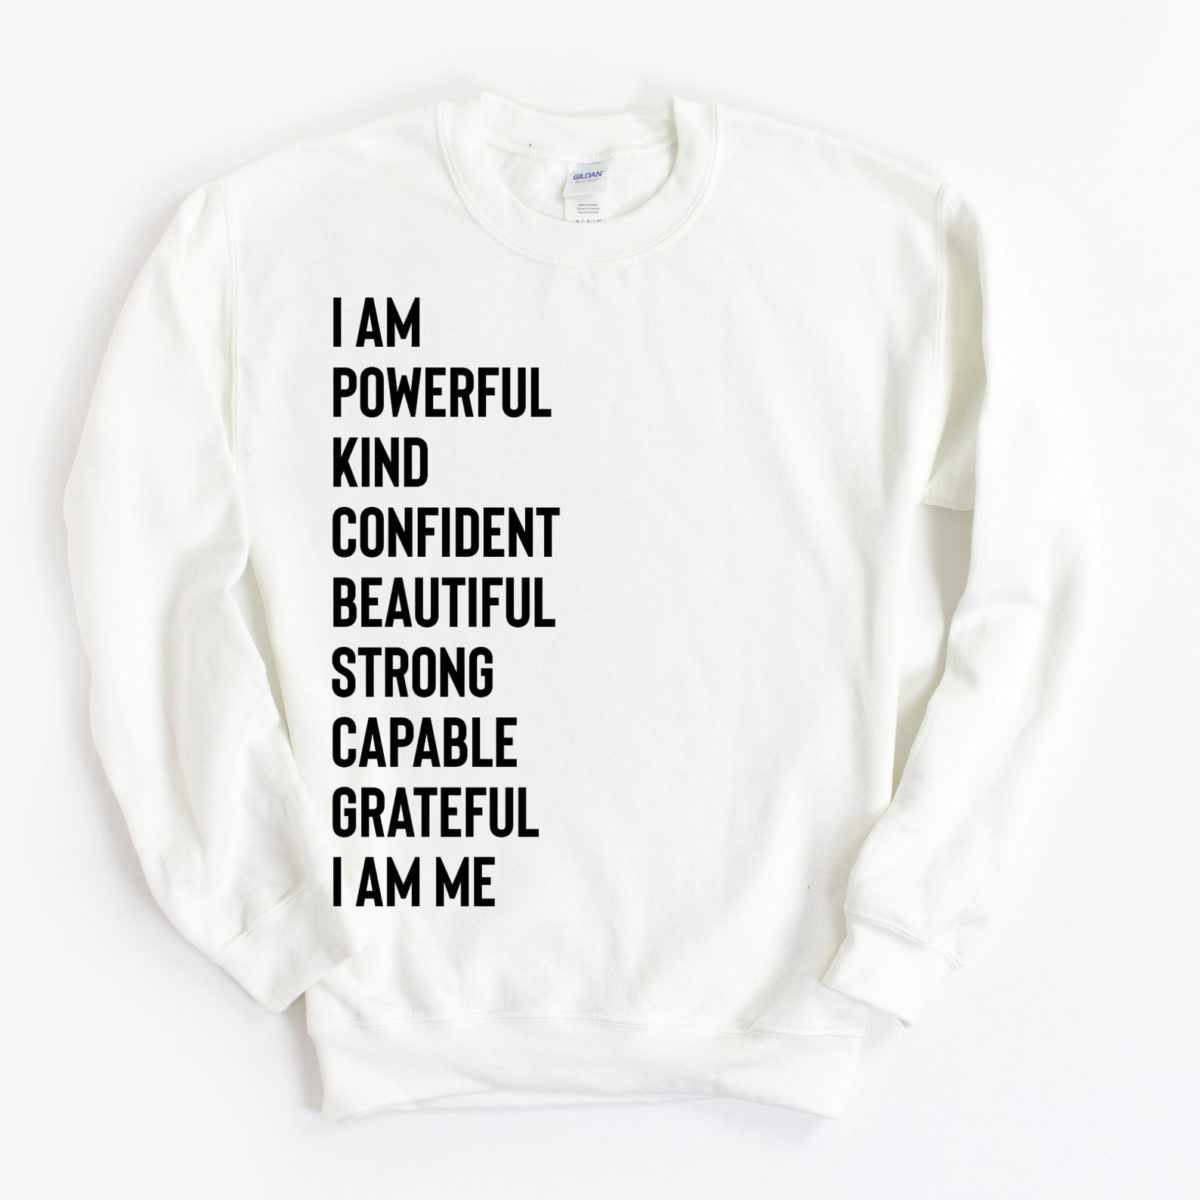 7 fun and affirmative sweatshirts sold on etsy | parenting questions | mamas uncut il 1588xn.2476739295 ob23